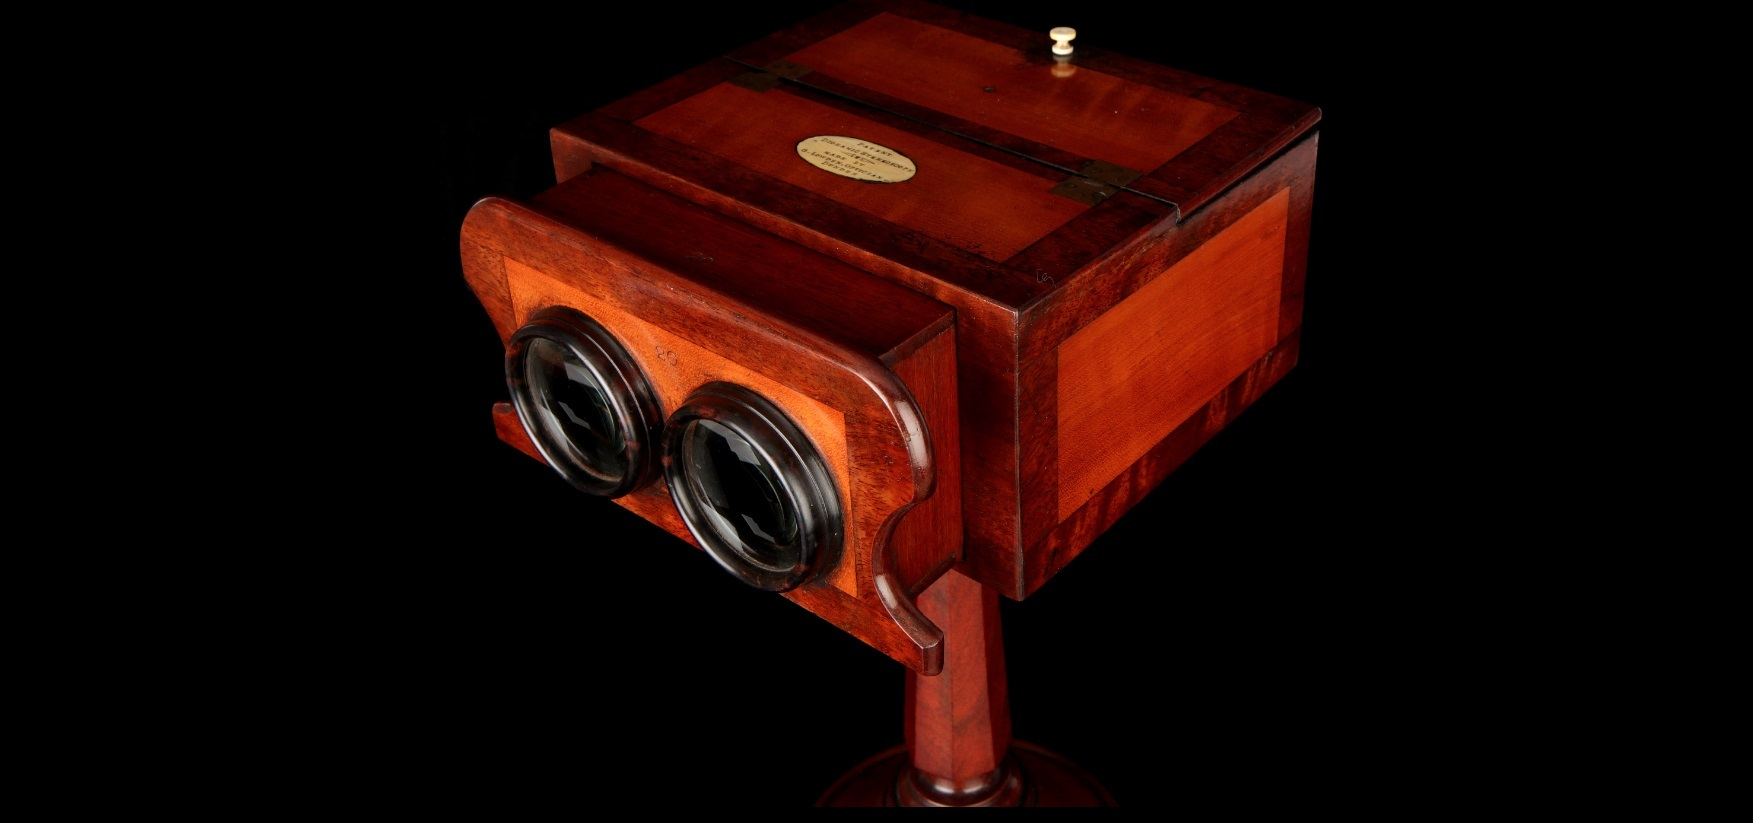 The Stereoscope